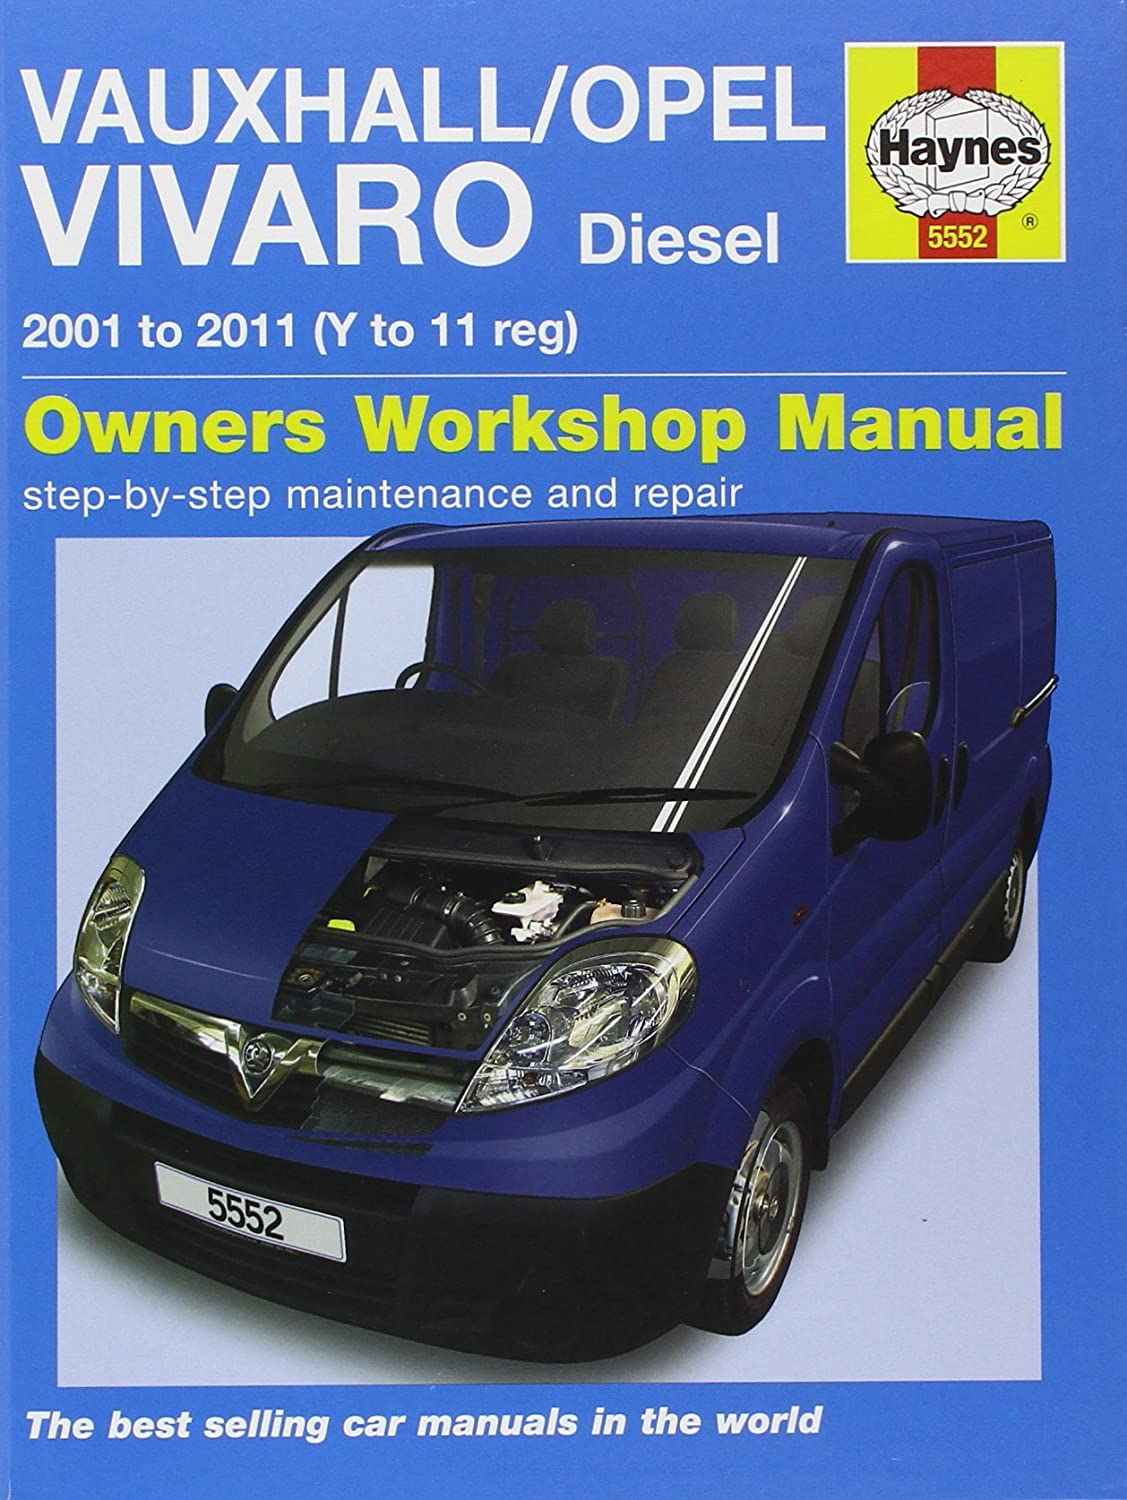 Vauxhallopel vivaro diesel 2001 2011 haynes service and repair vauxhallopel vivaro diesel 2001 2011 haynes service and repair manuals martynn randall amazon car motorbike asfbconference2016 Choice Image